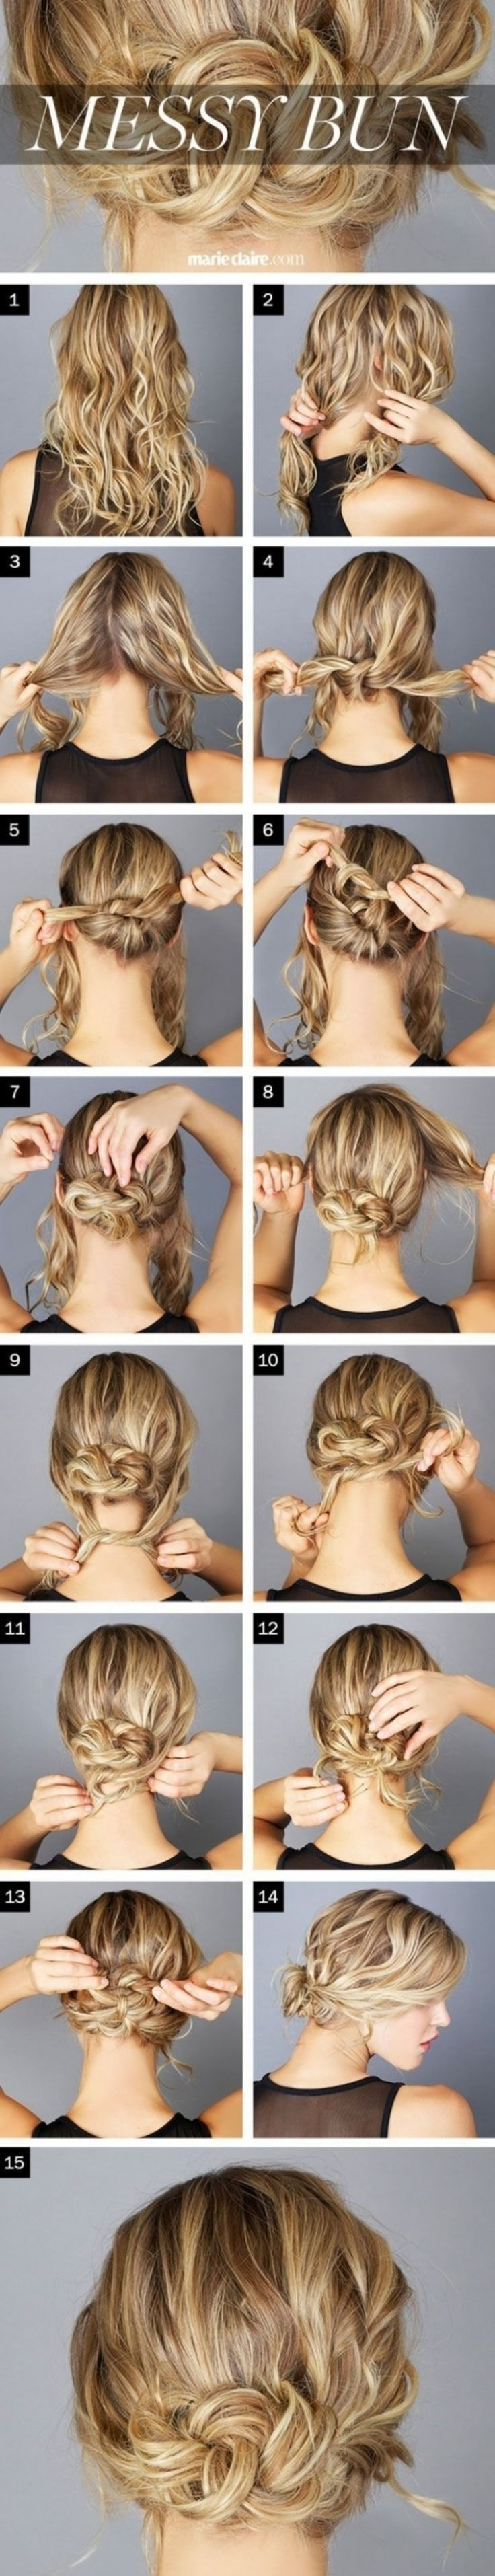 10. #Messy Bun - 16 Gorgeous Hair #Styles for Lazy Girls like Me ... → Hair #Waves